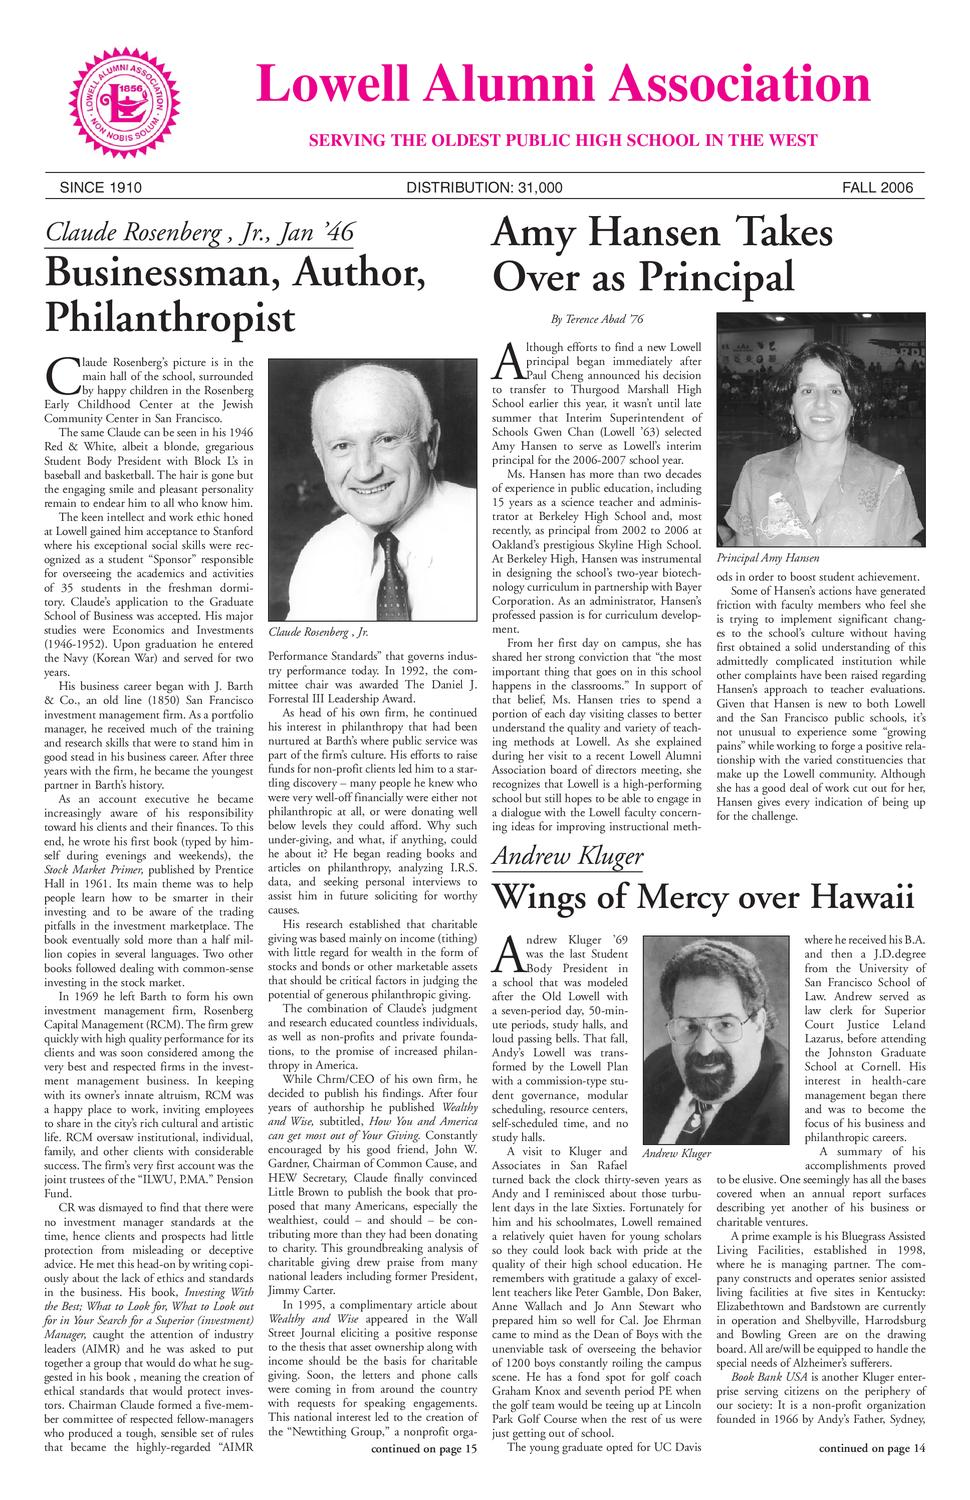 Lowell Alumni Newsletter Fall 2006